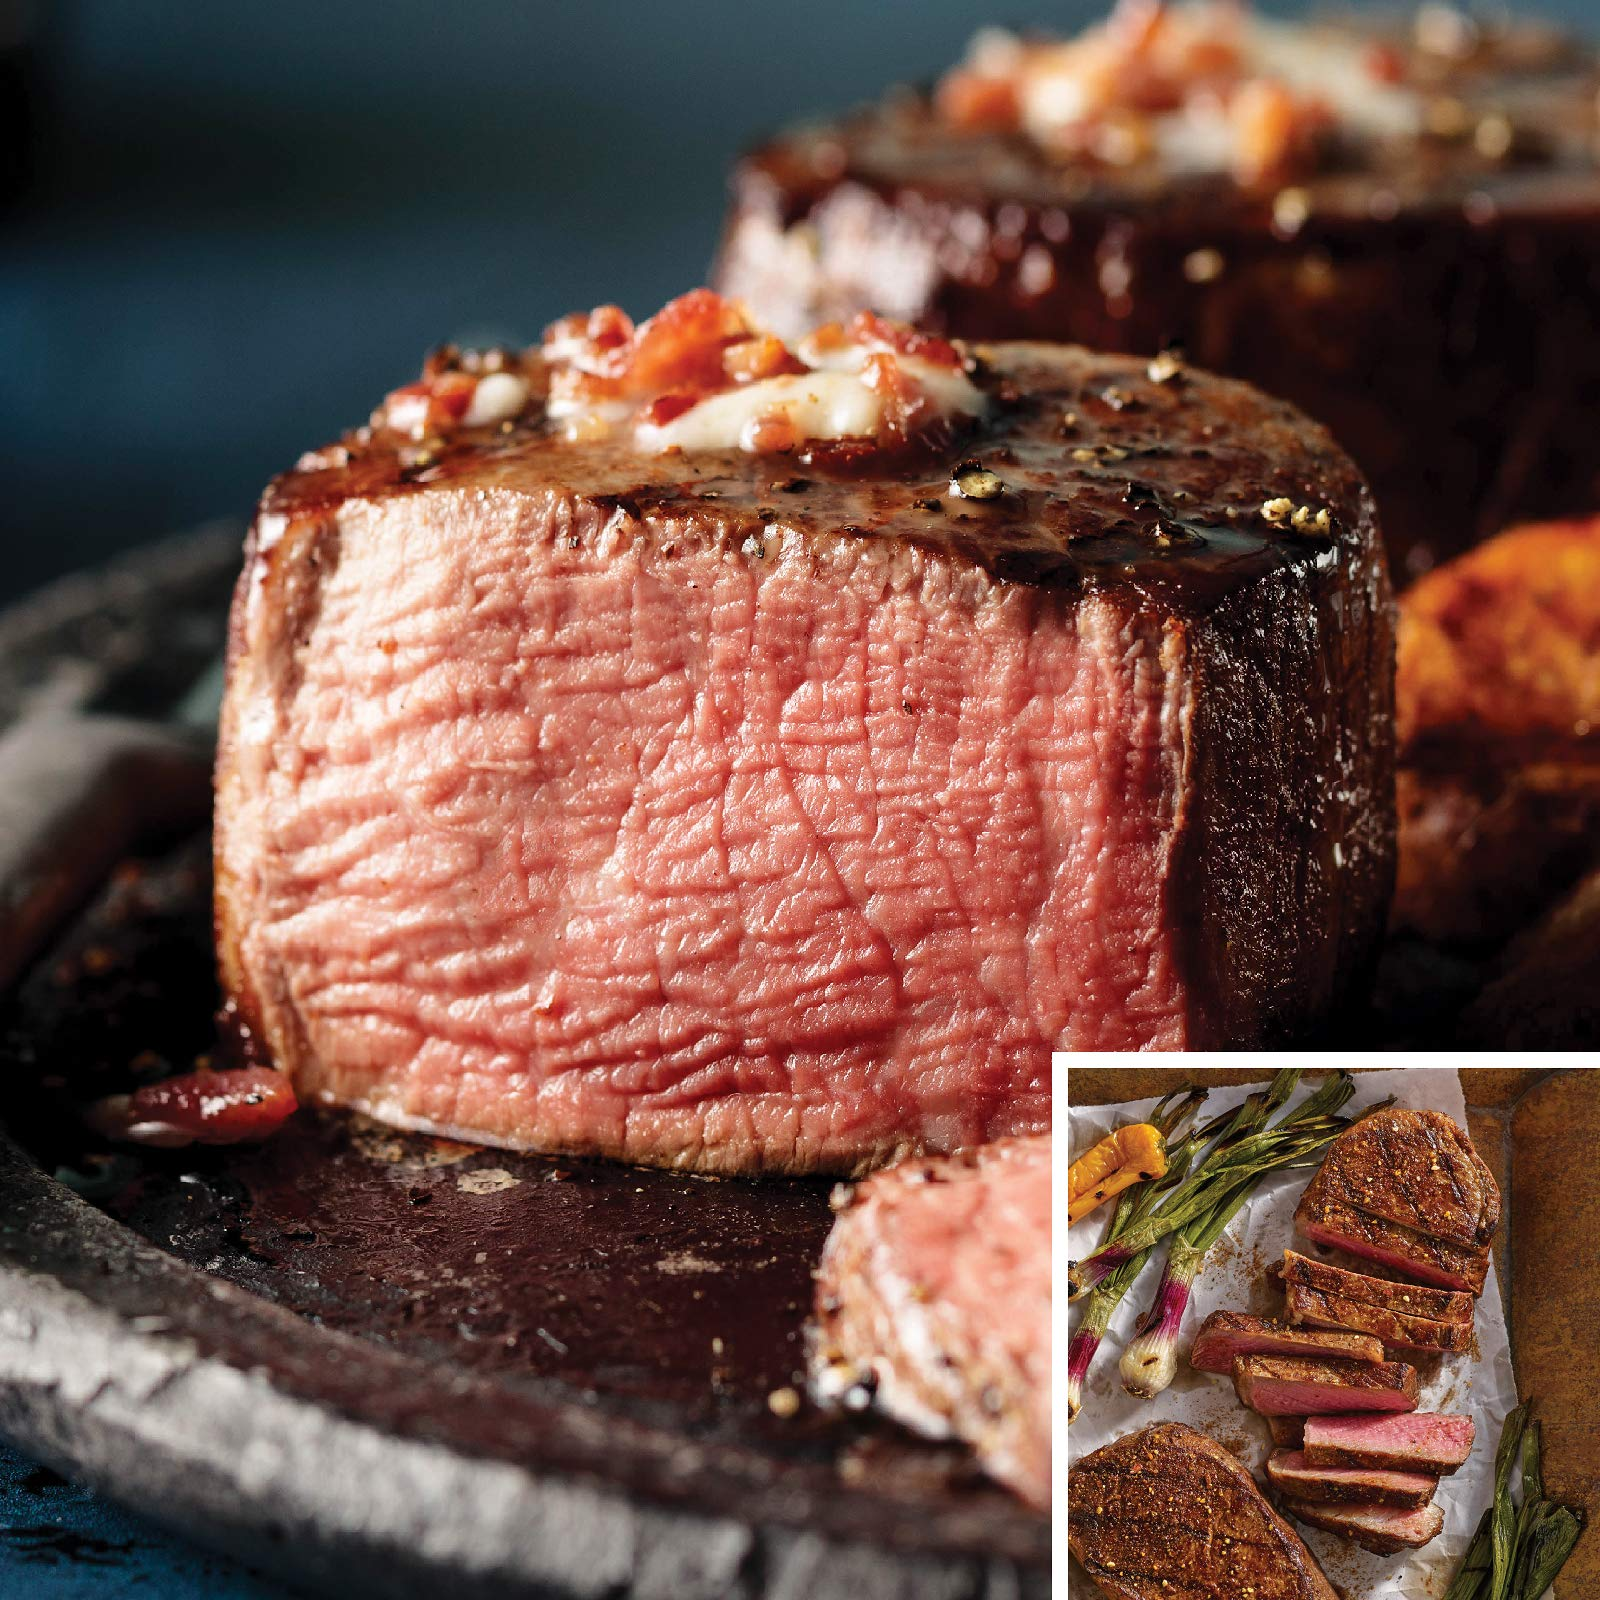 Omaha Steaks International Combo (4-Piece with Filet Mignons and Boneless New York Strips)